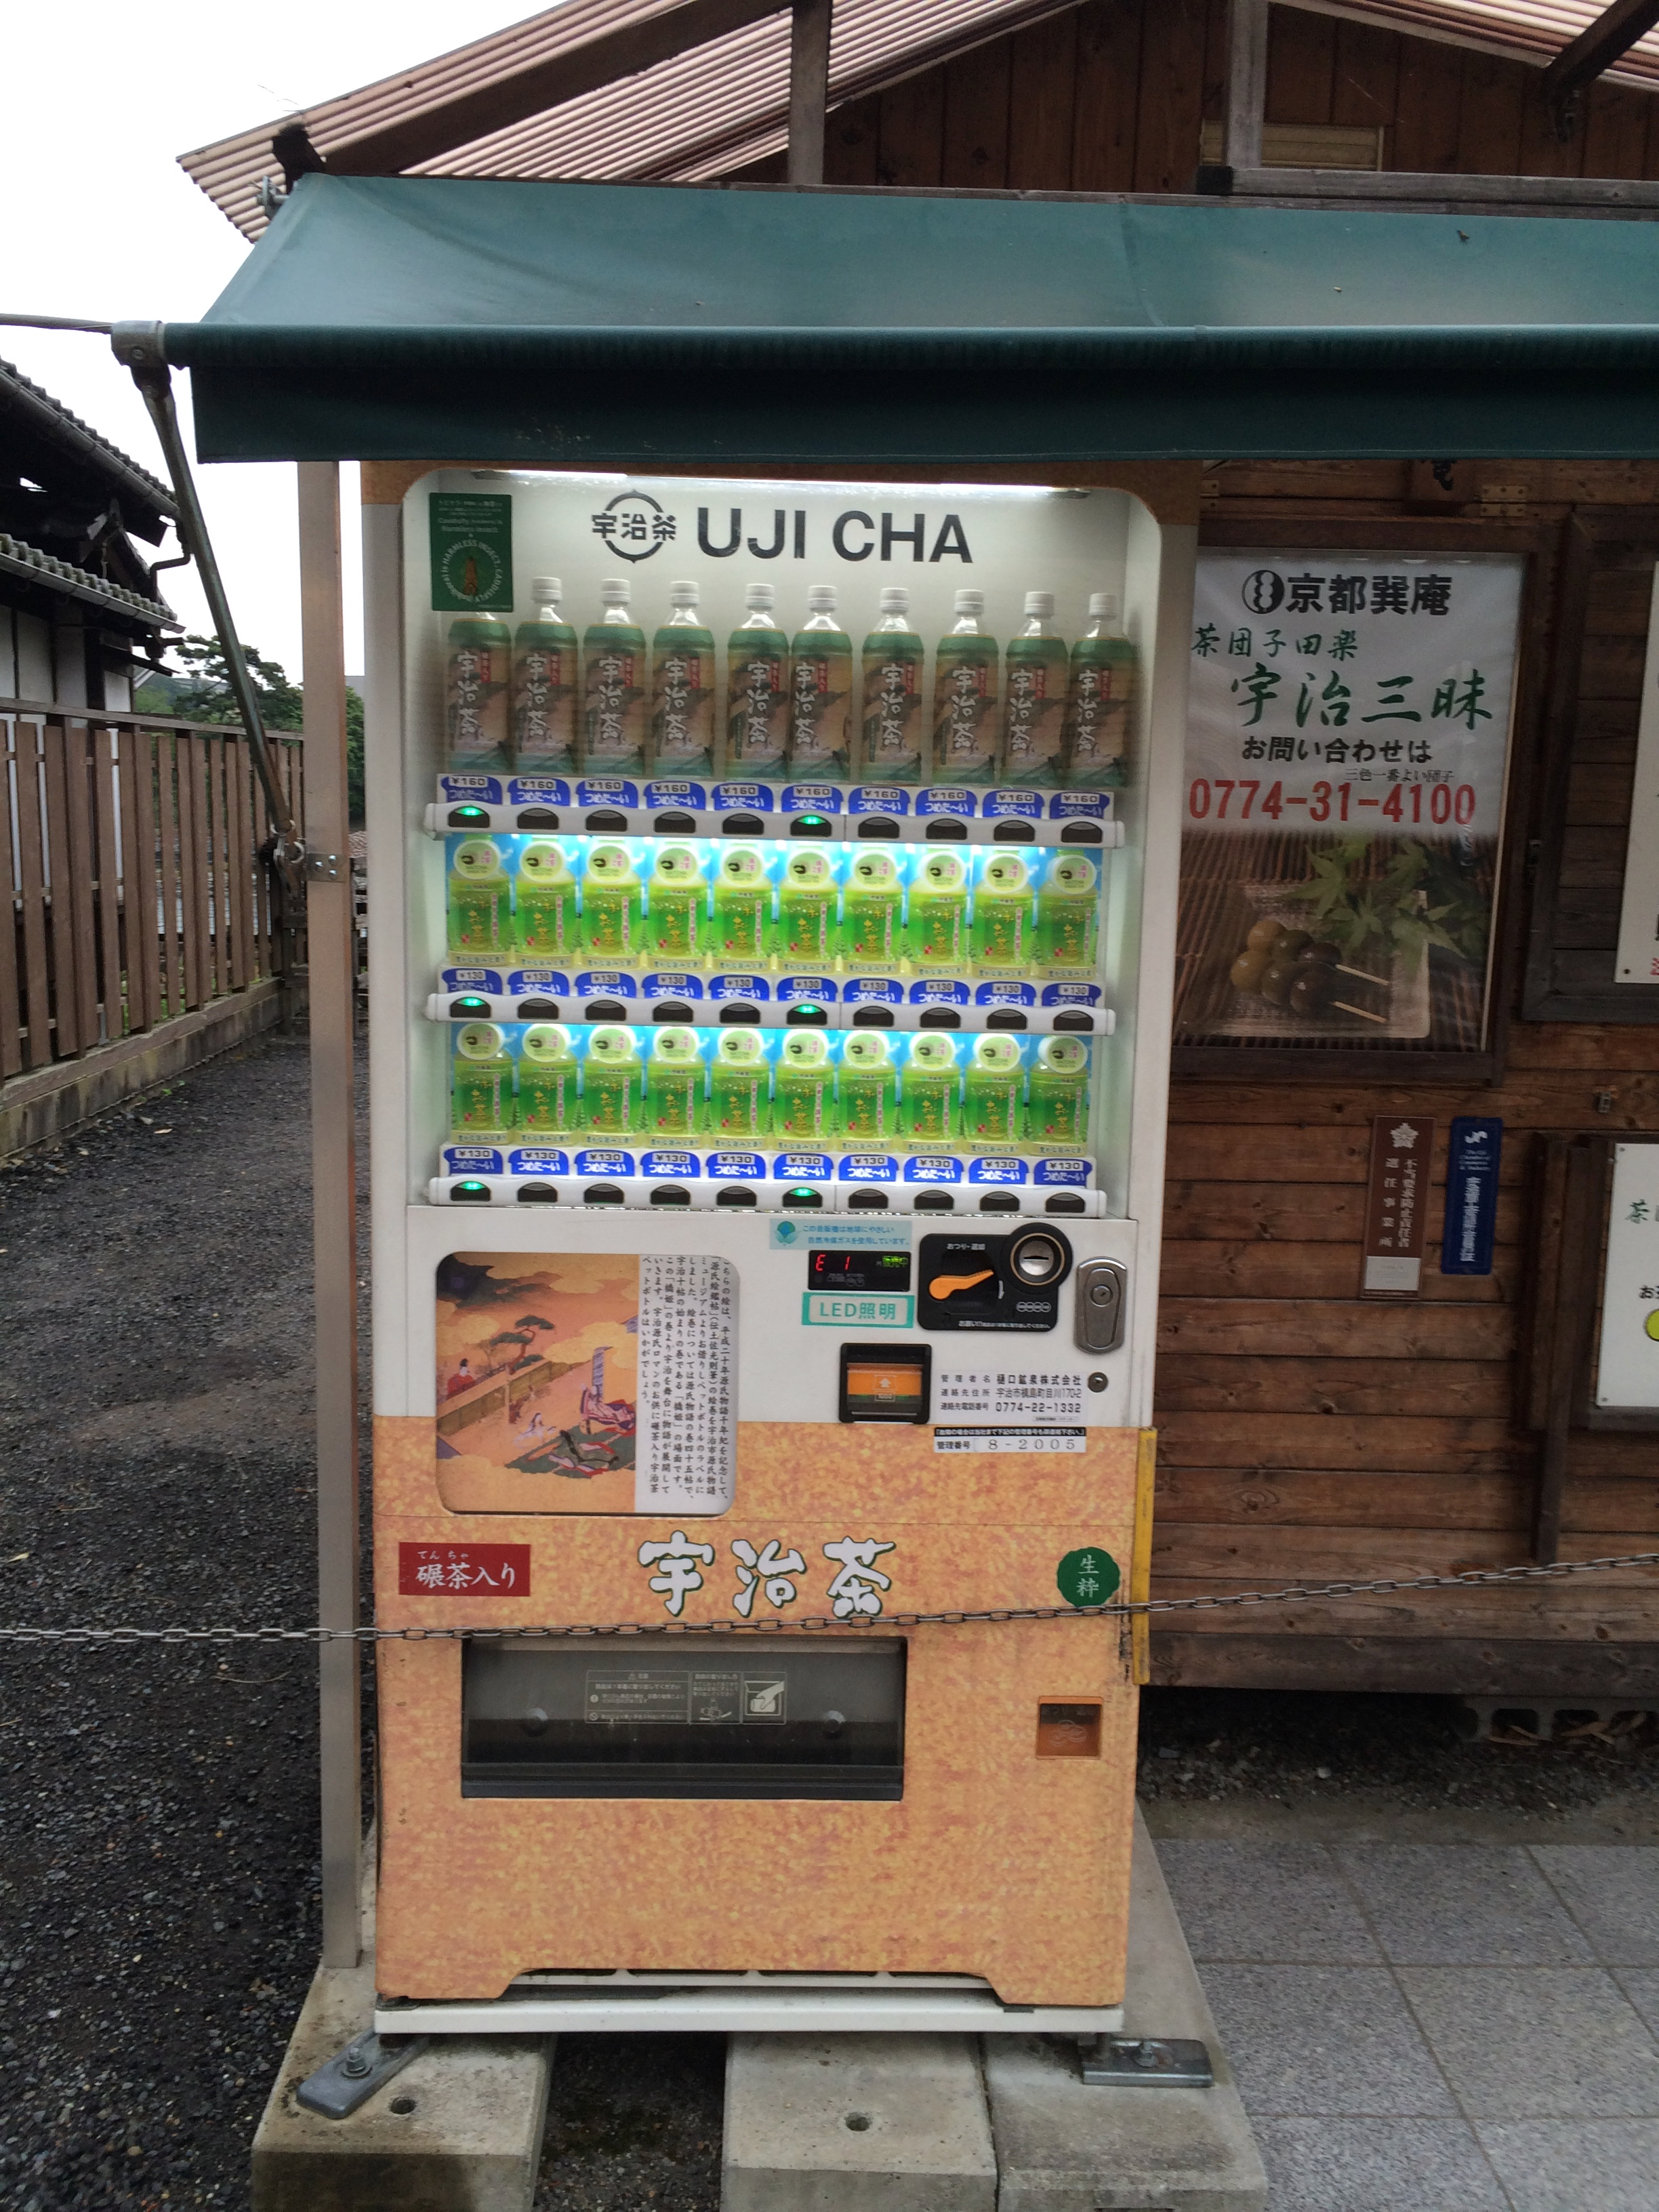 Vending machine selling only bottled tea from Uji